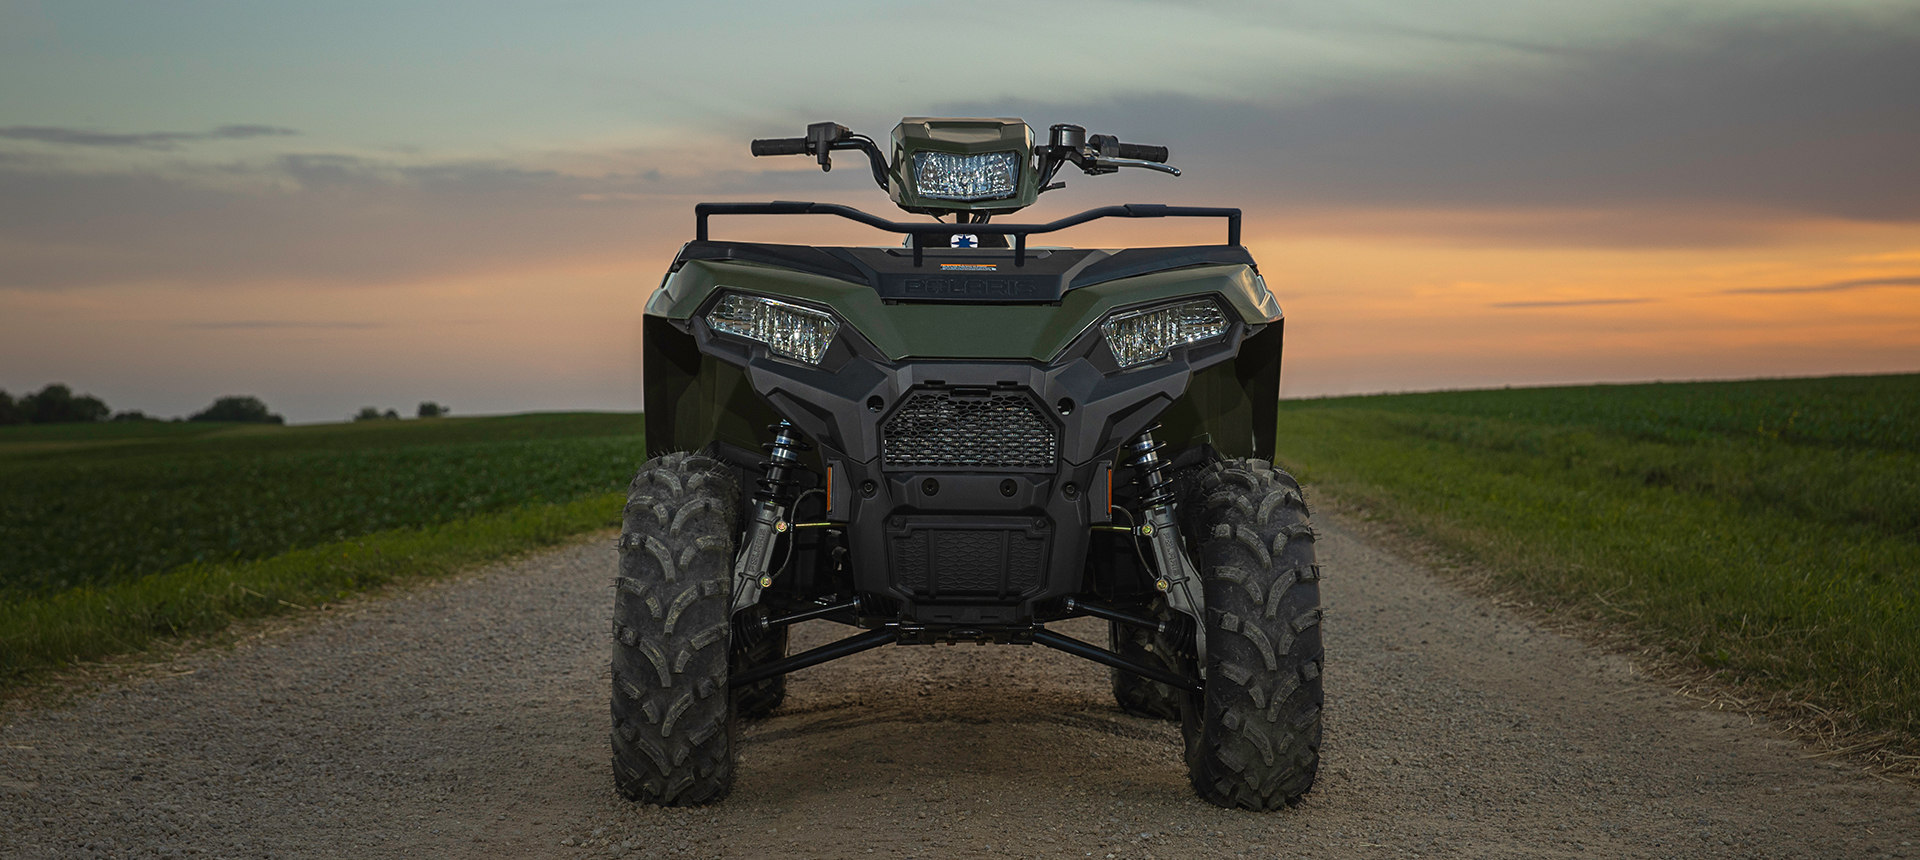 Best New ATVs for Beginners According to U.S. News and World Report | MotorBiscuit